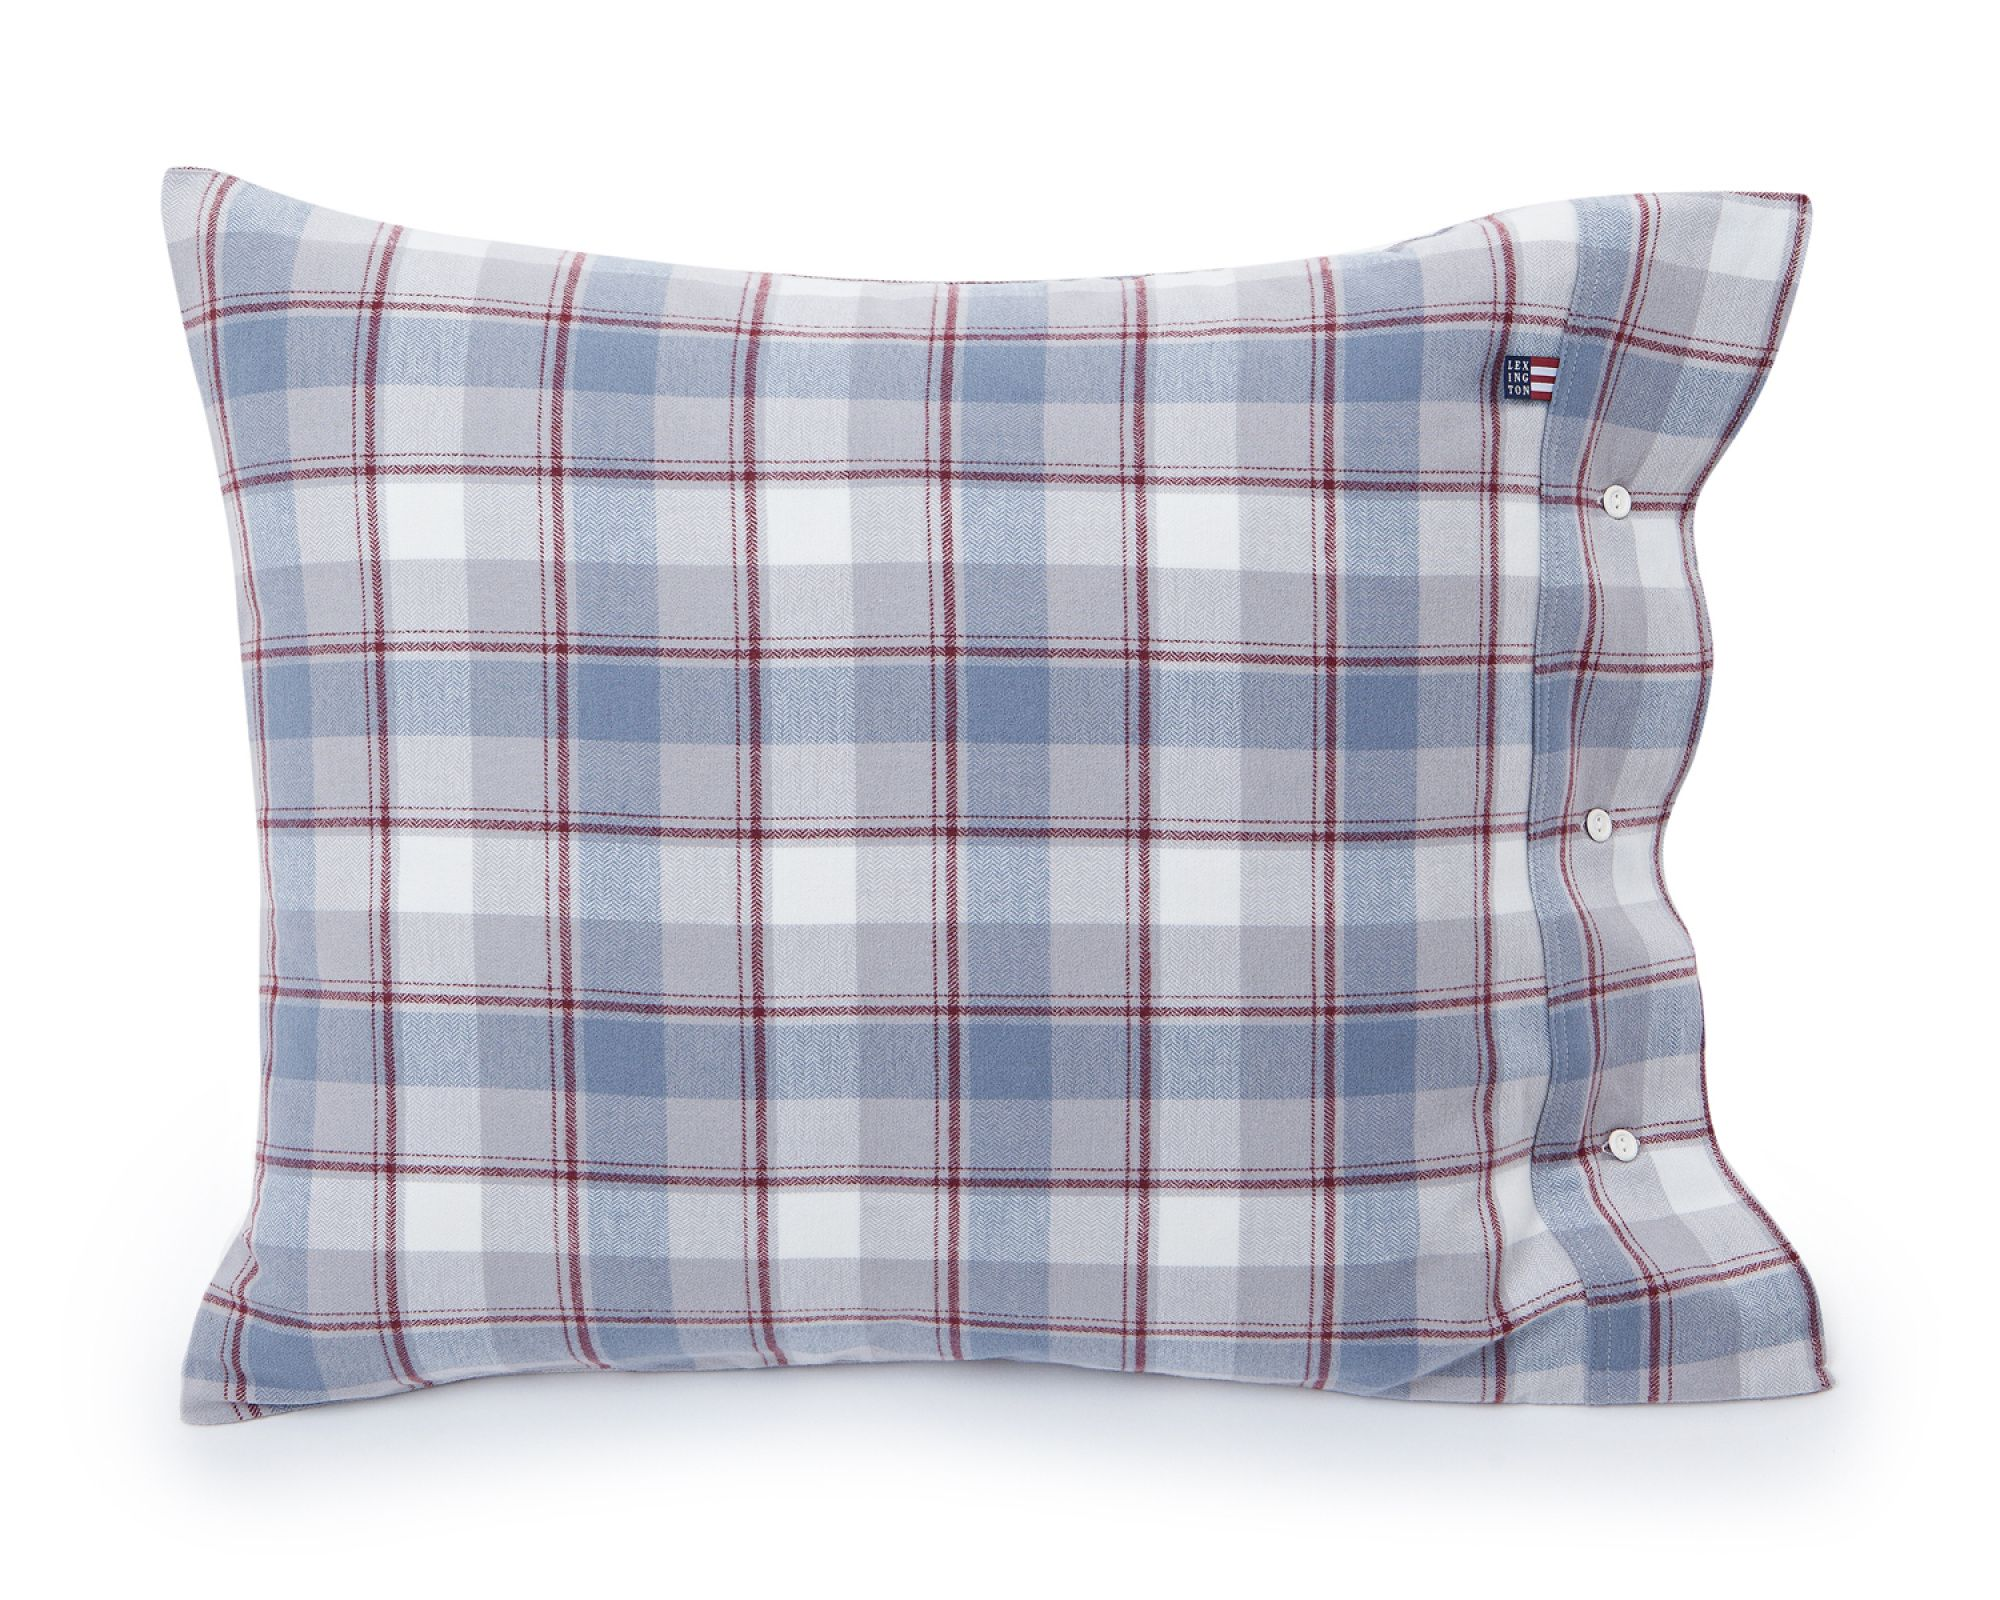 Betten Kramer Bettwäsche Check Flannel Pillowcase Lexington Bettwäsche Home Bettwäsche